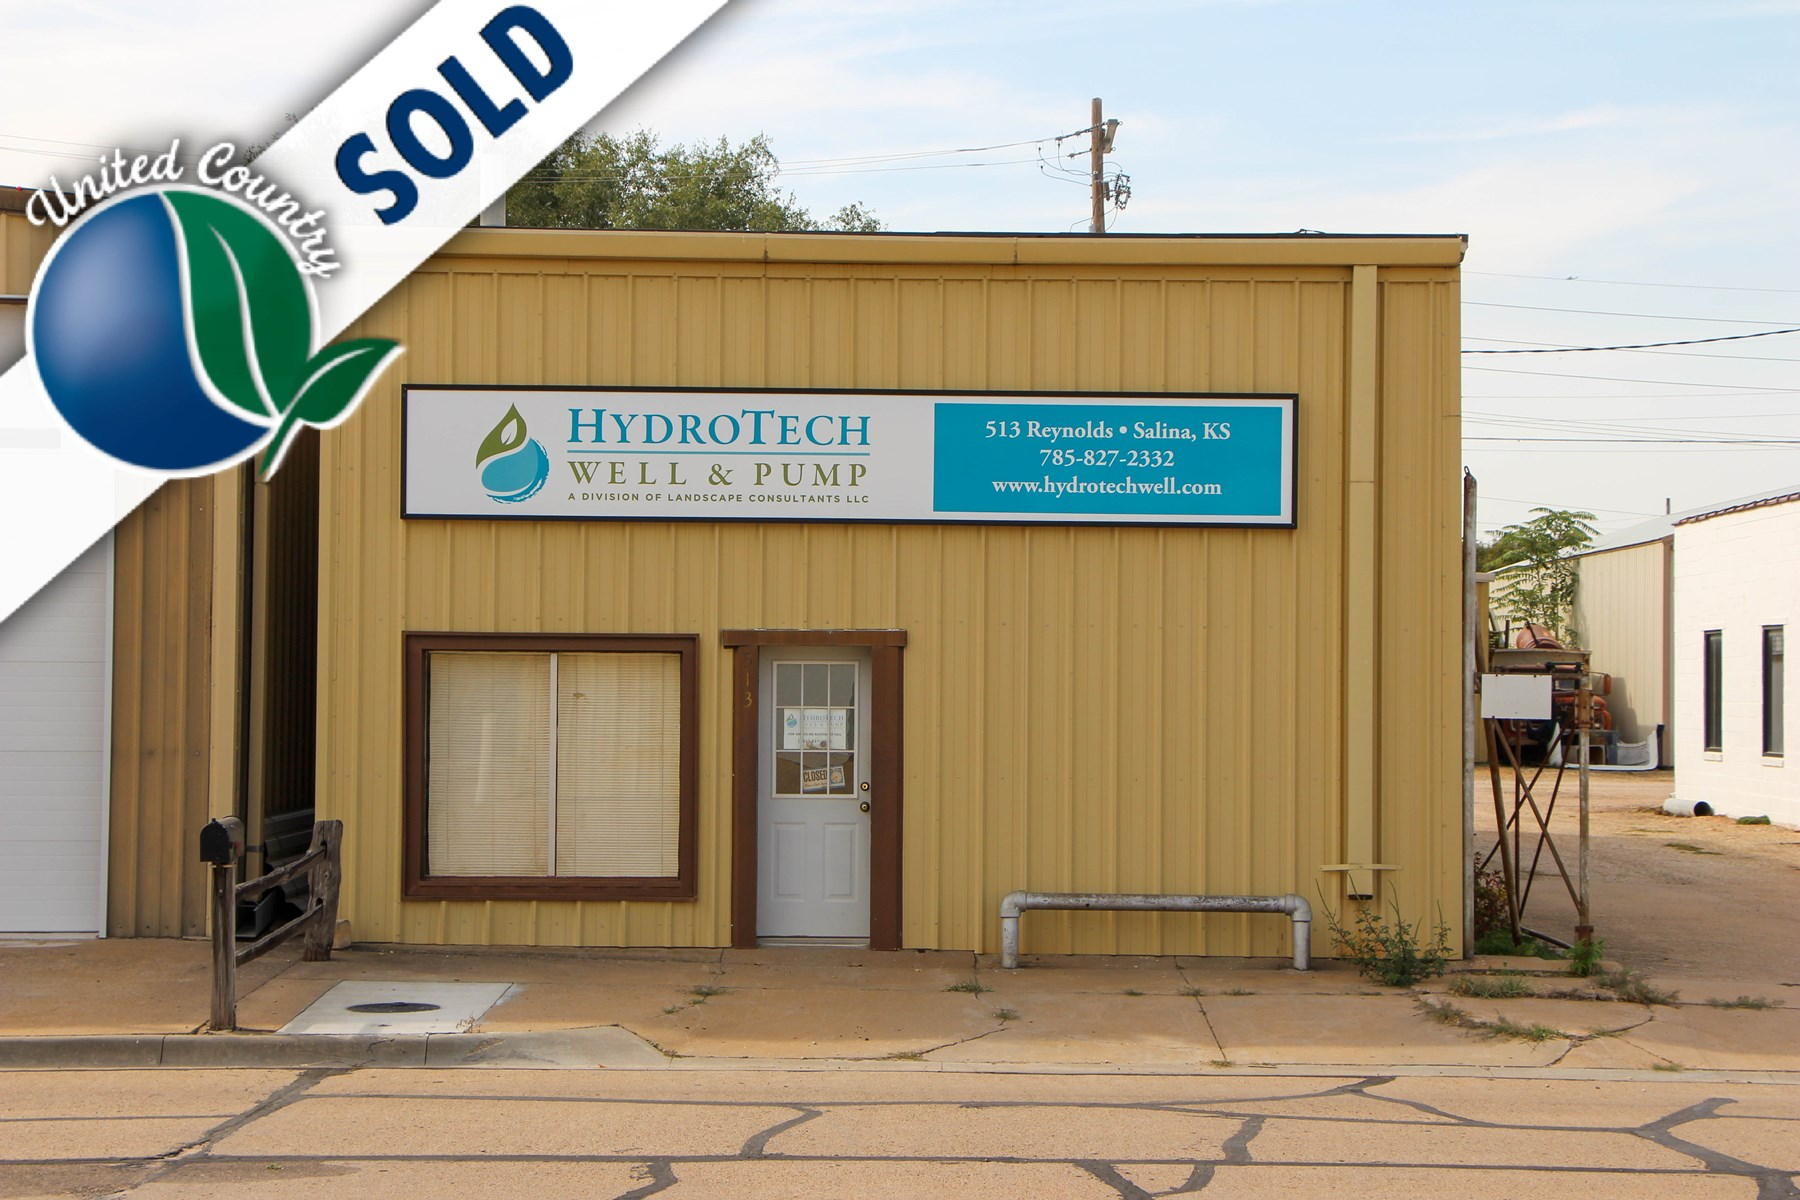 Lot #1 - Commercial Industrial Building with Office Space